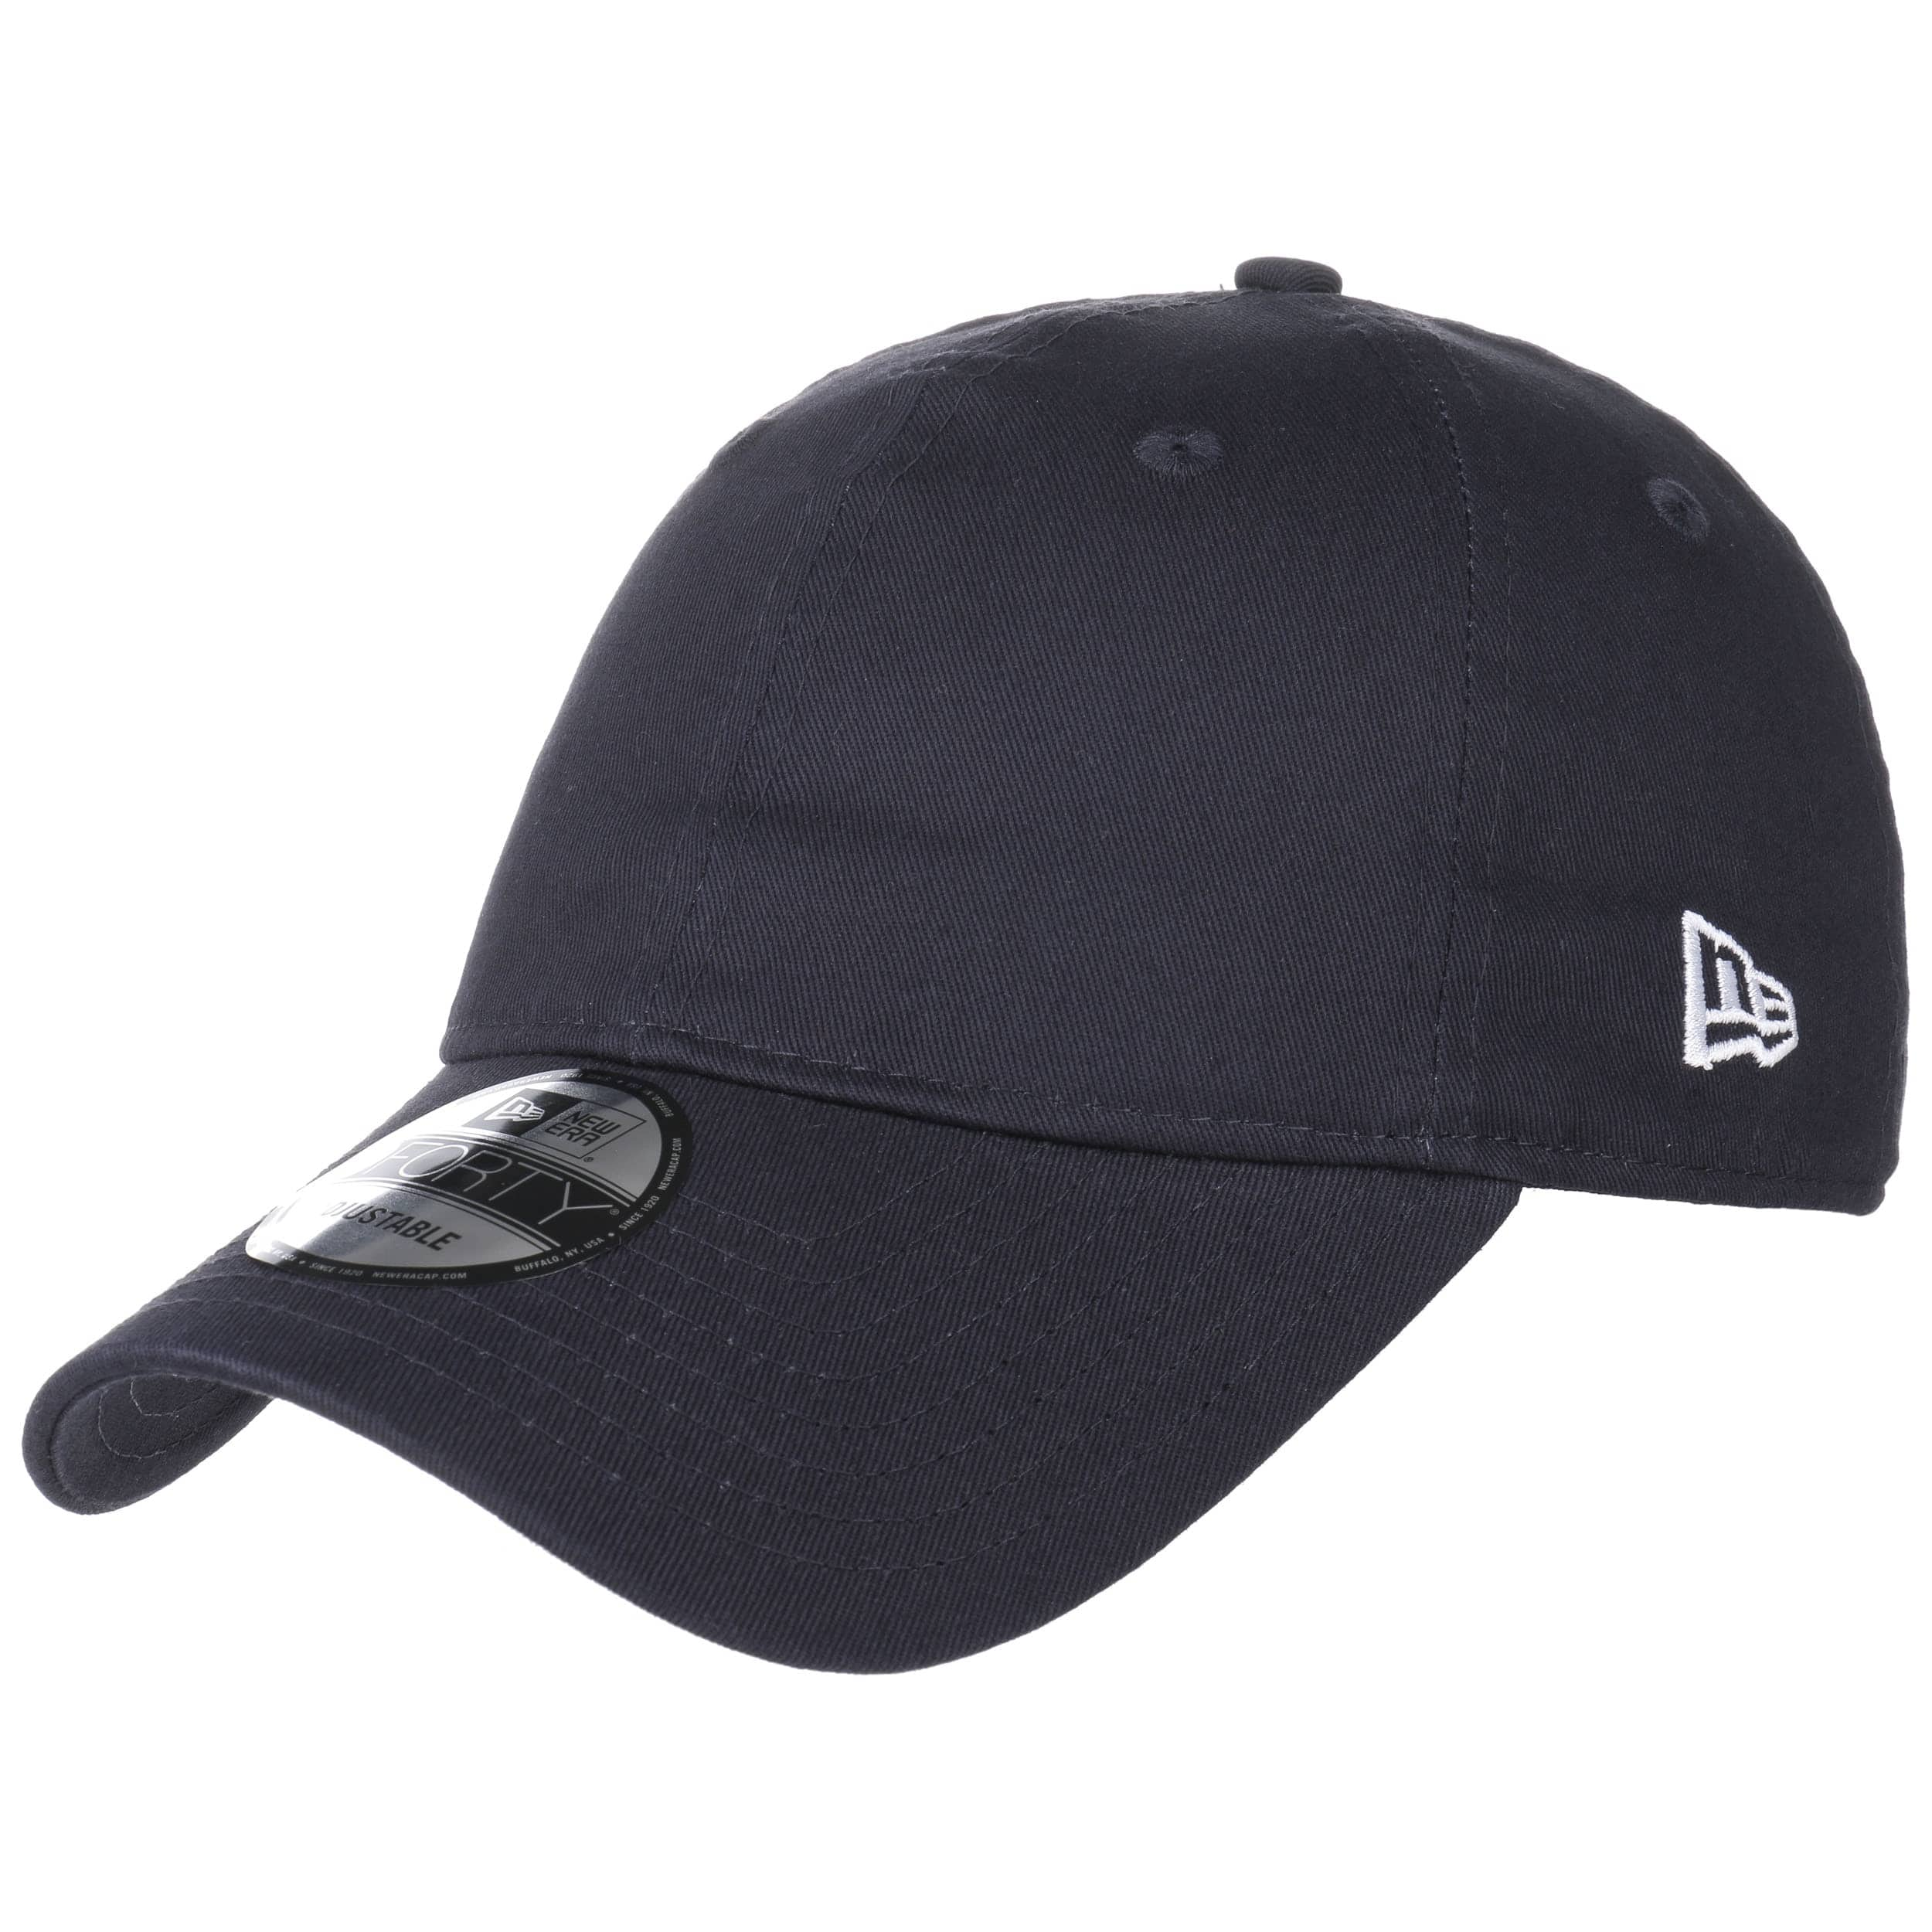 50f352dbef3 ... free shipping 9forty basic unstructured cap by new era 3 bf328 f864c